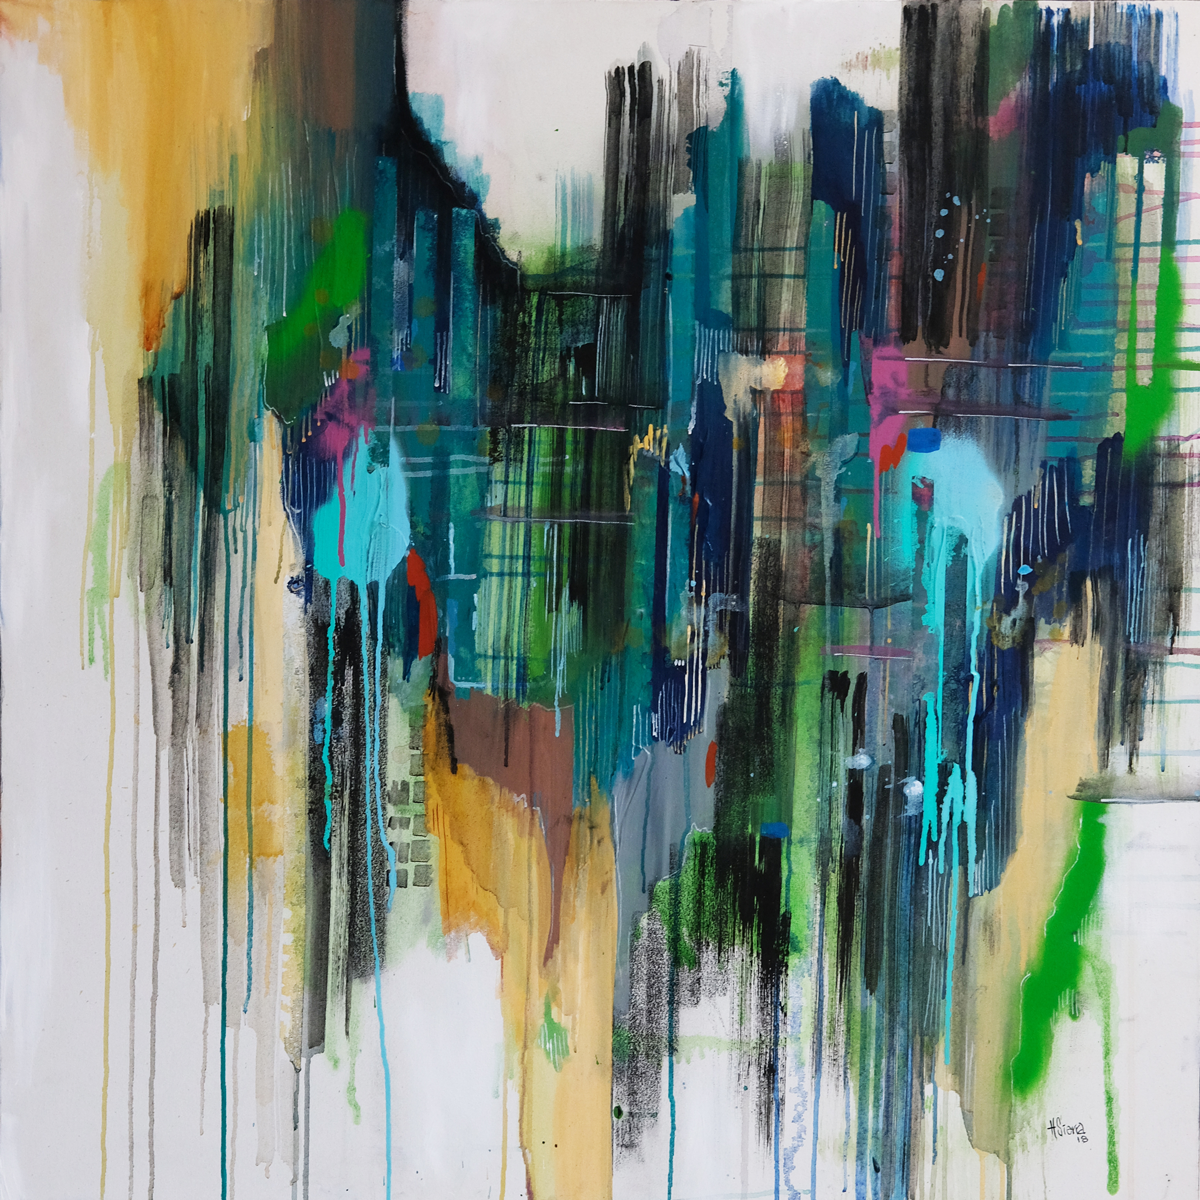 Movement in the City in Green No.2